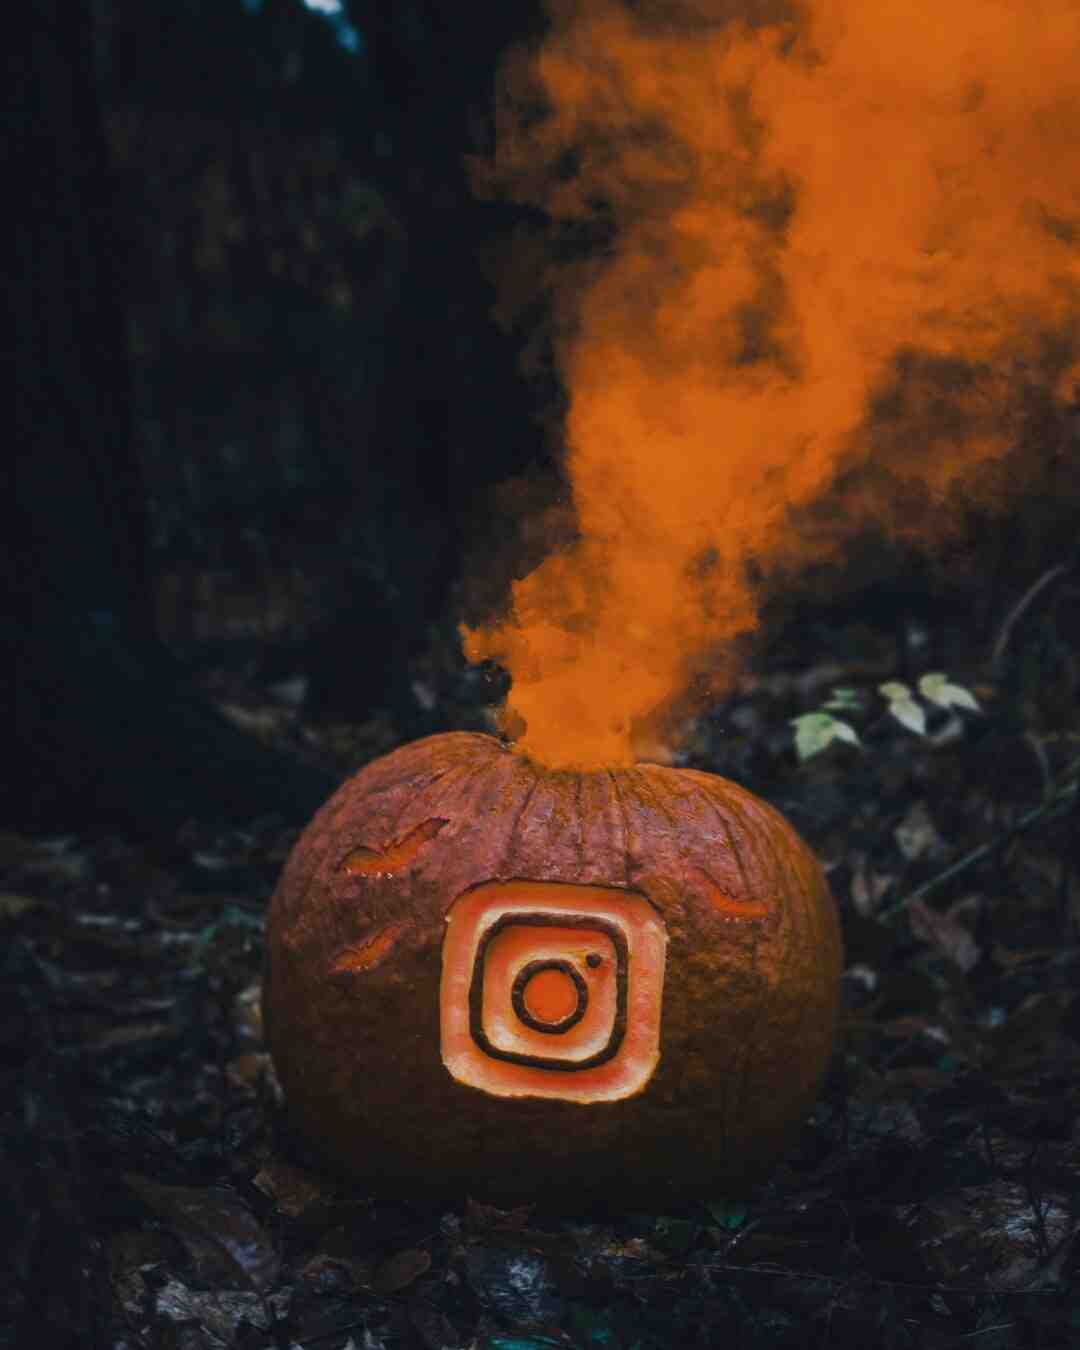 How to post multiple pictures on instagram